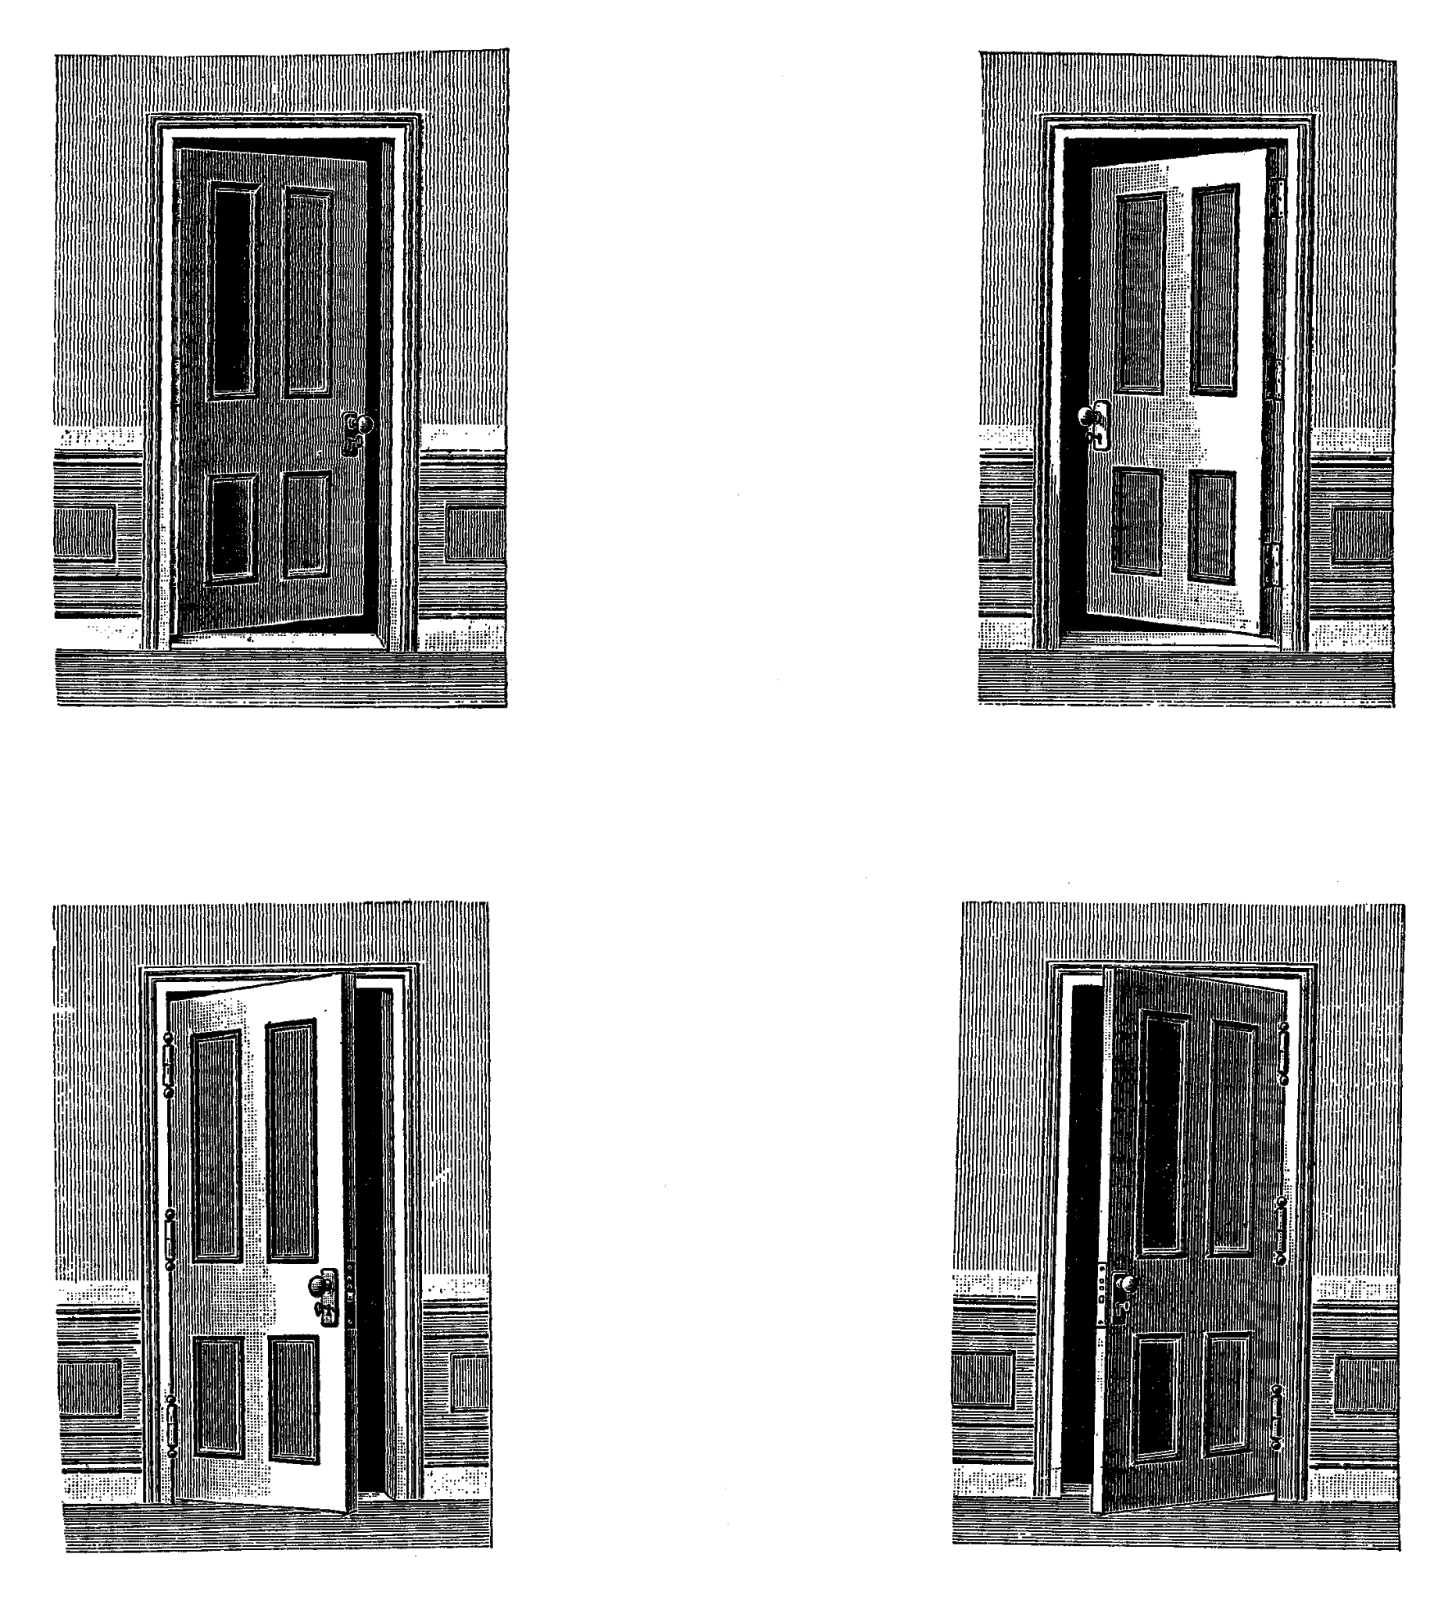 Open Door clipart old door Sheet found four doors Images: